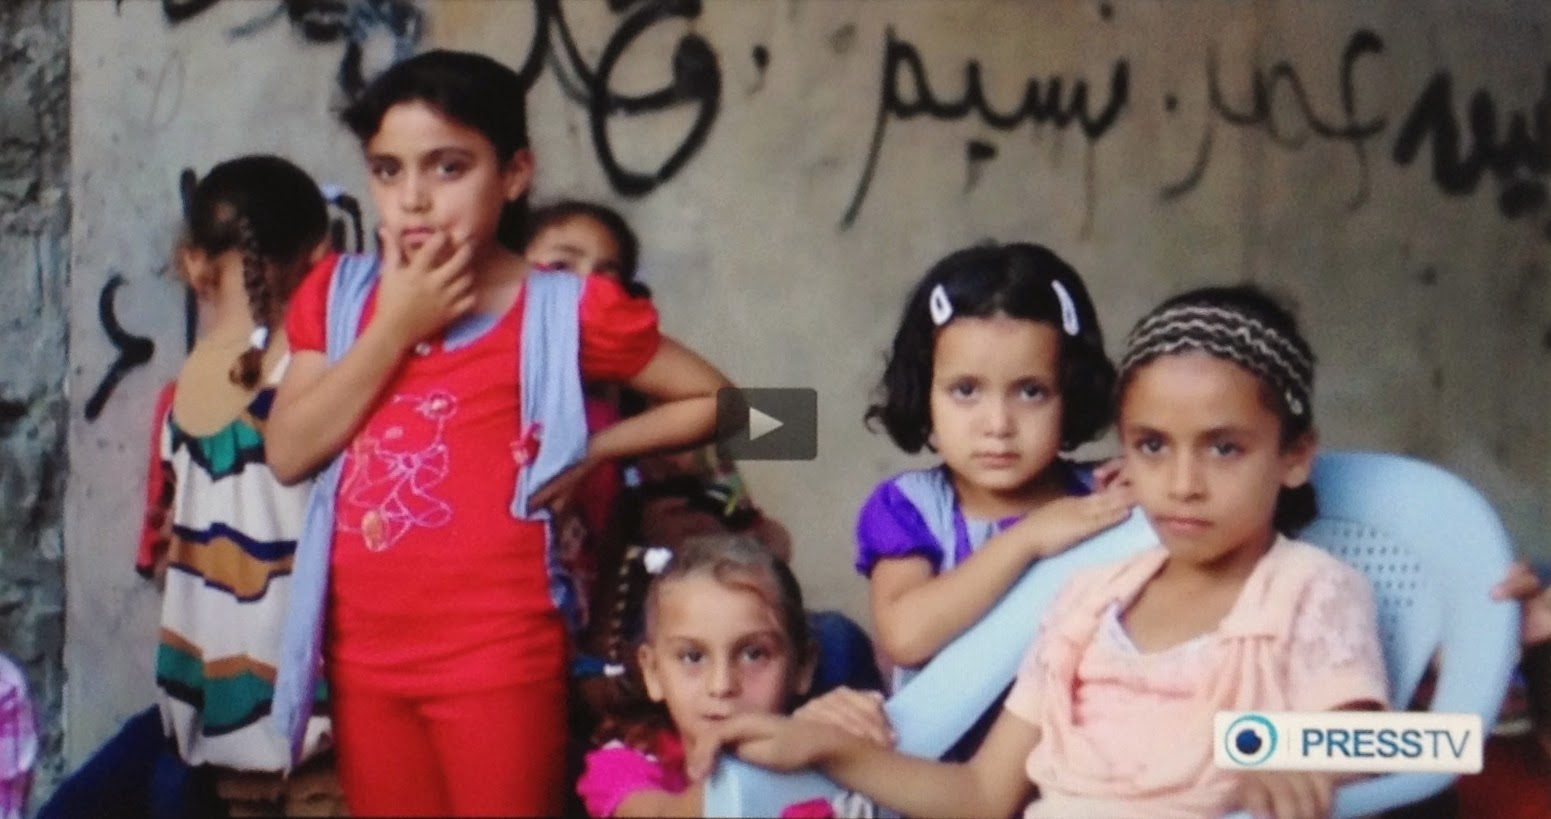 http://www.presstv.com/detail/2014/10/02/380829/israeli-war-orphaned-gaza-children/